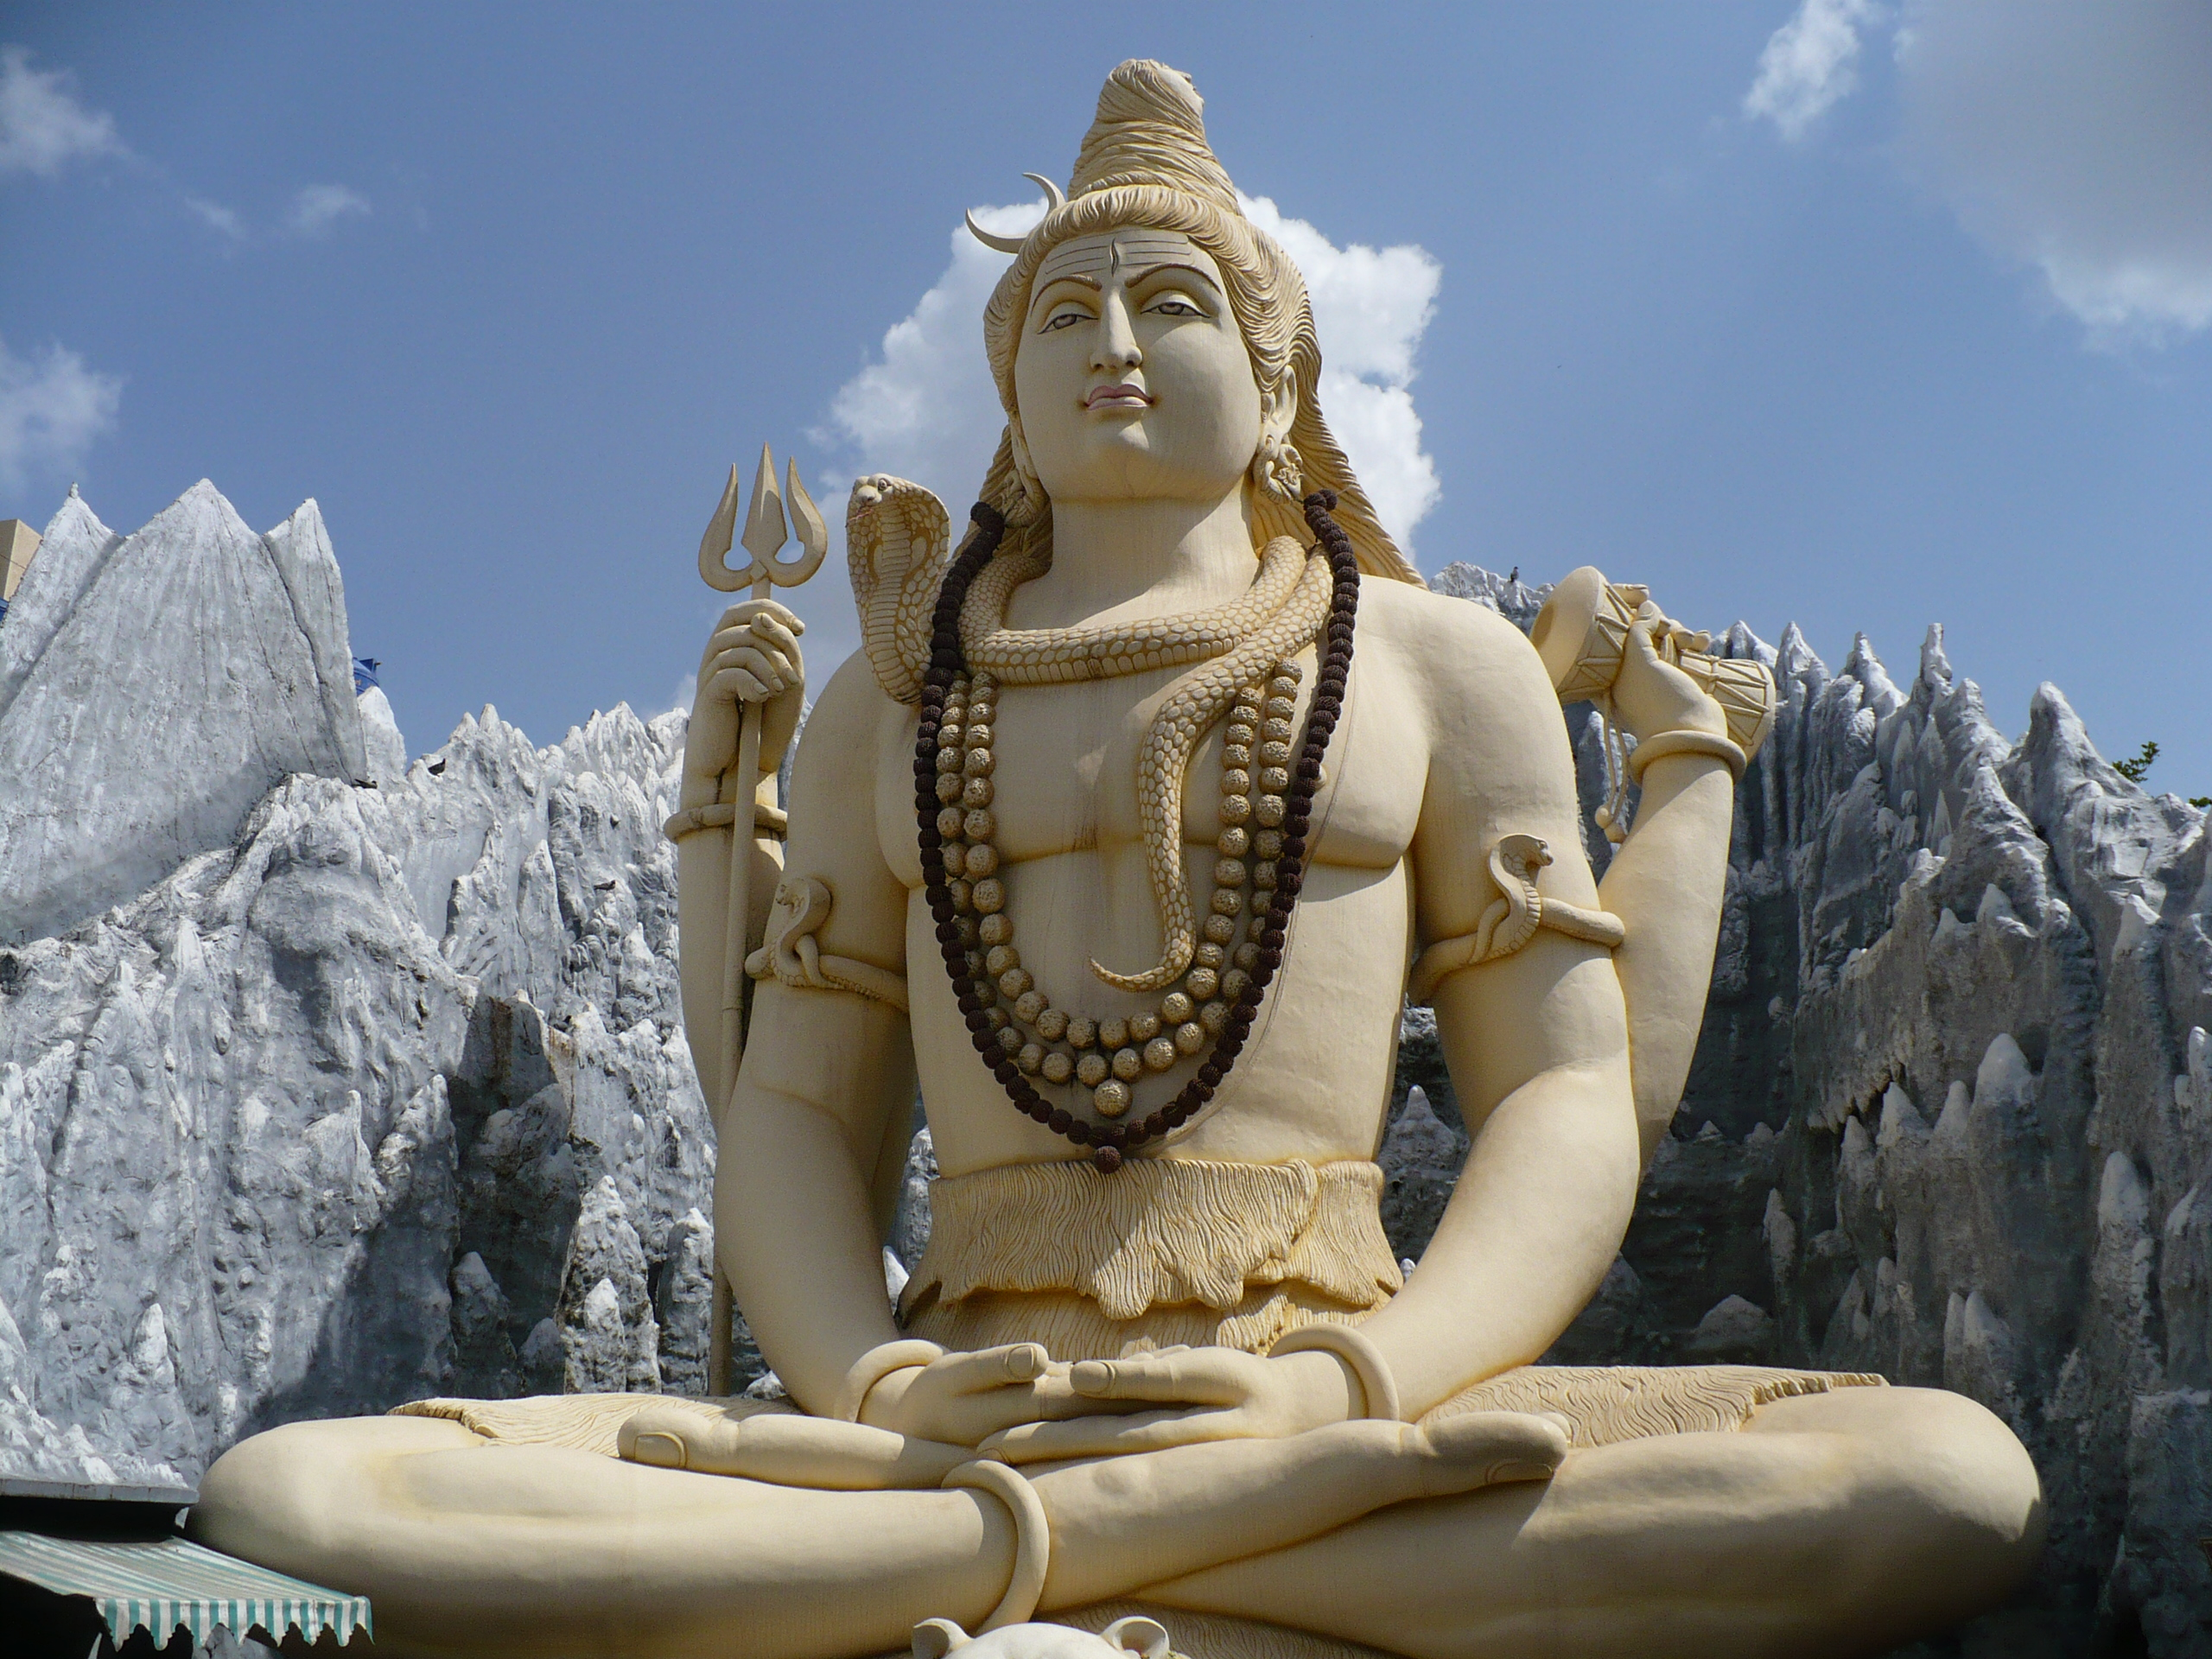 https://i0.wp.com/upload.wikimedia.org/wikipedia/commons/5/52/Bangalore_Shiva.jpg